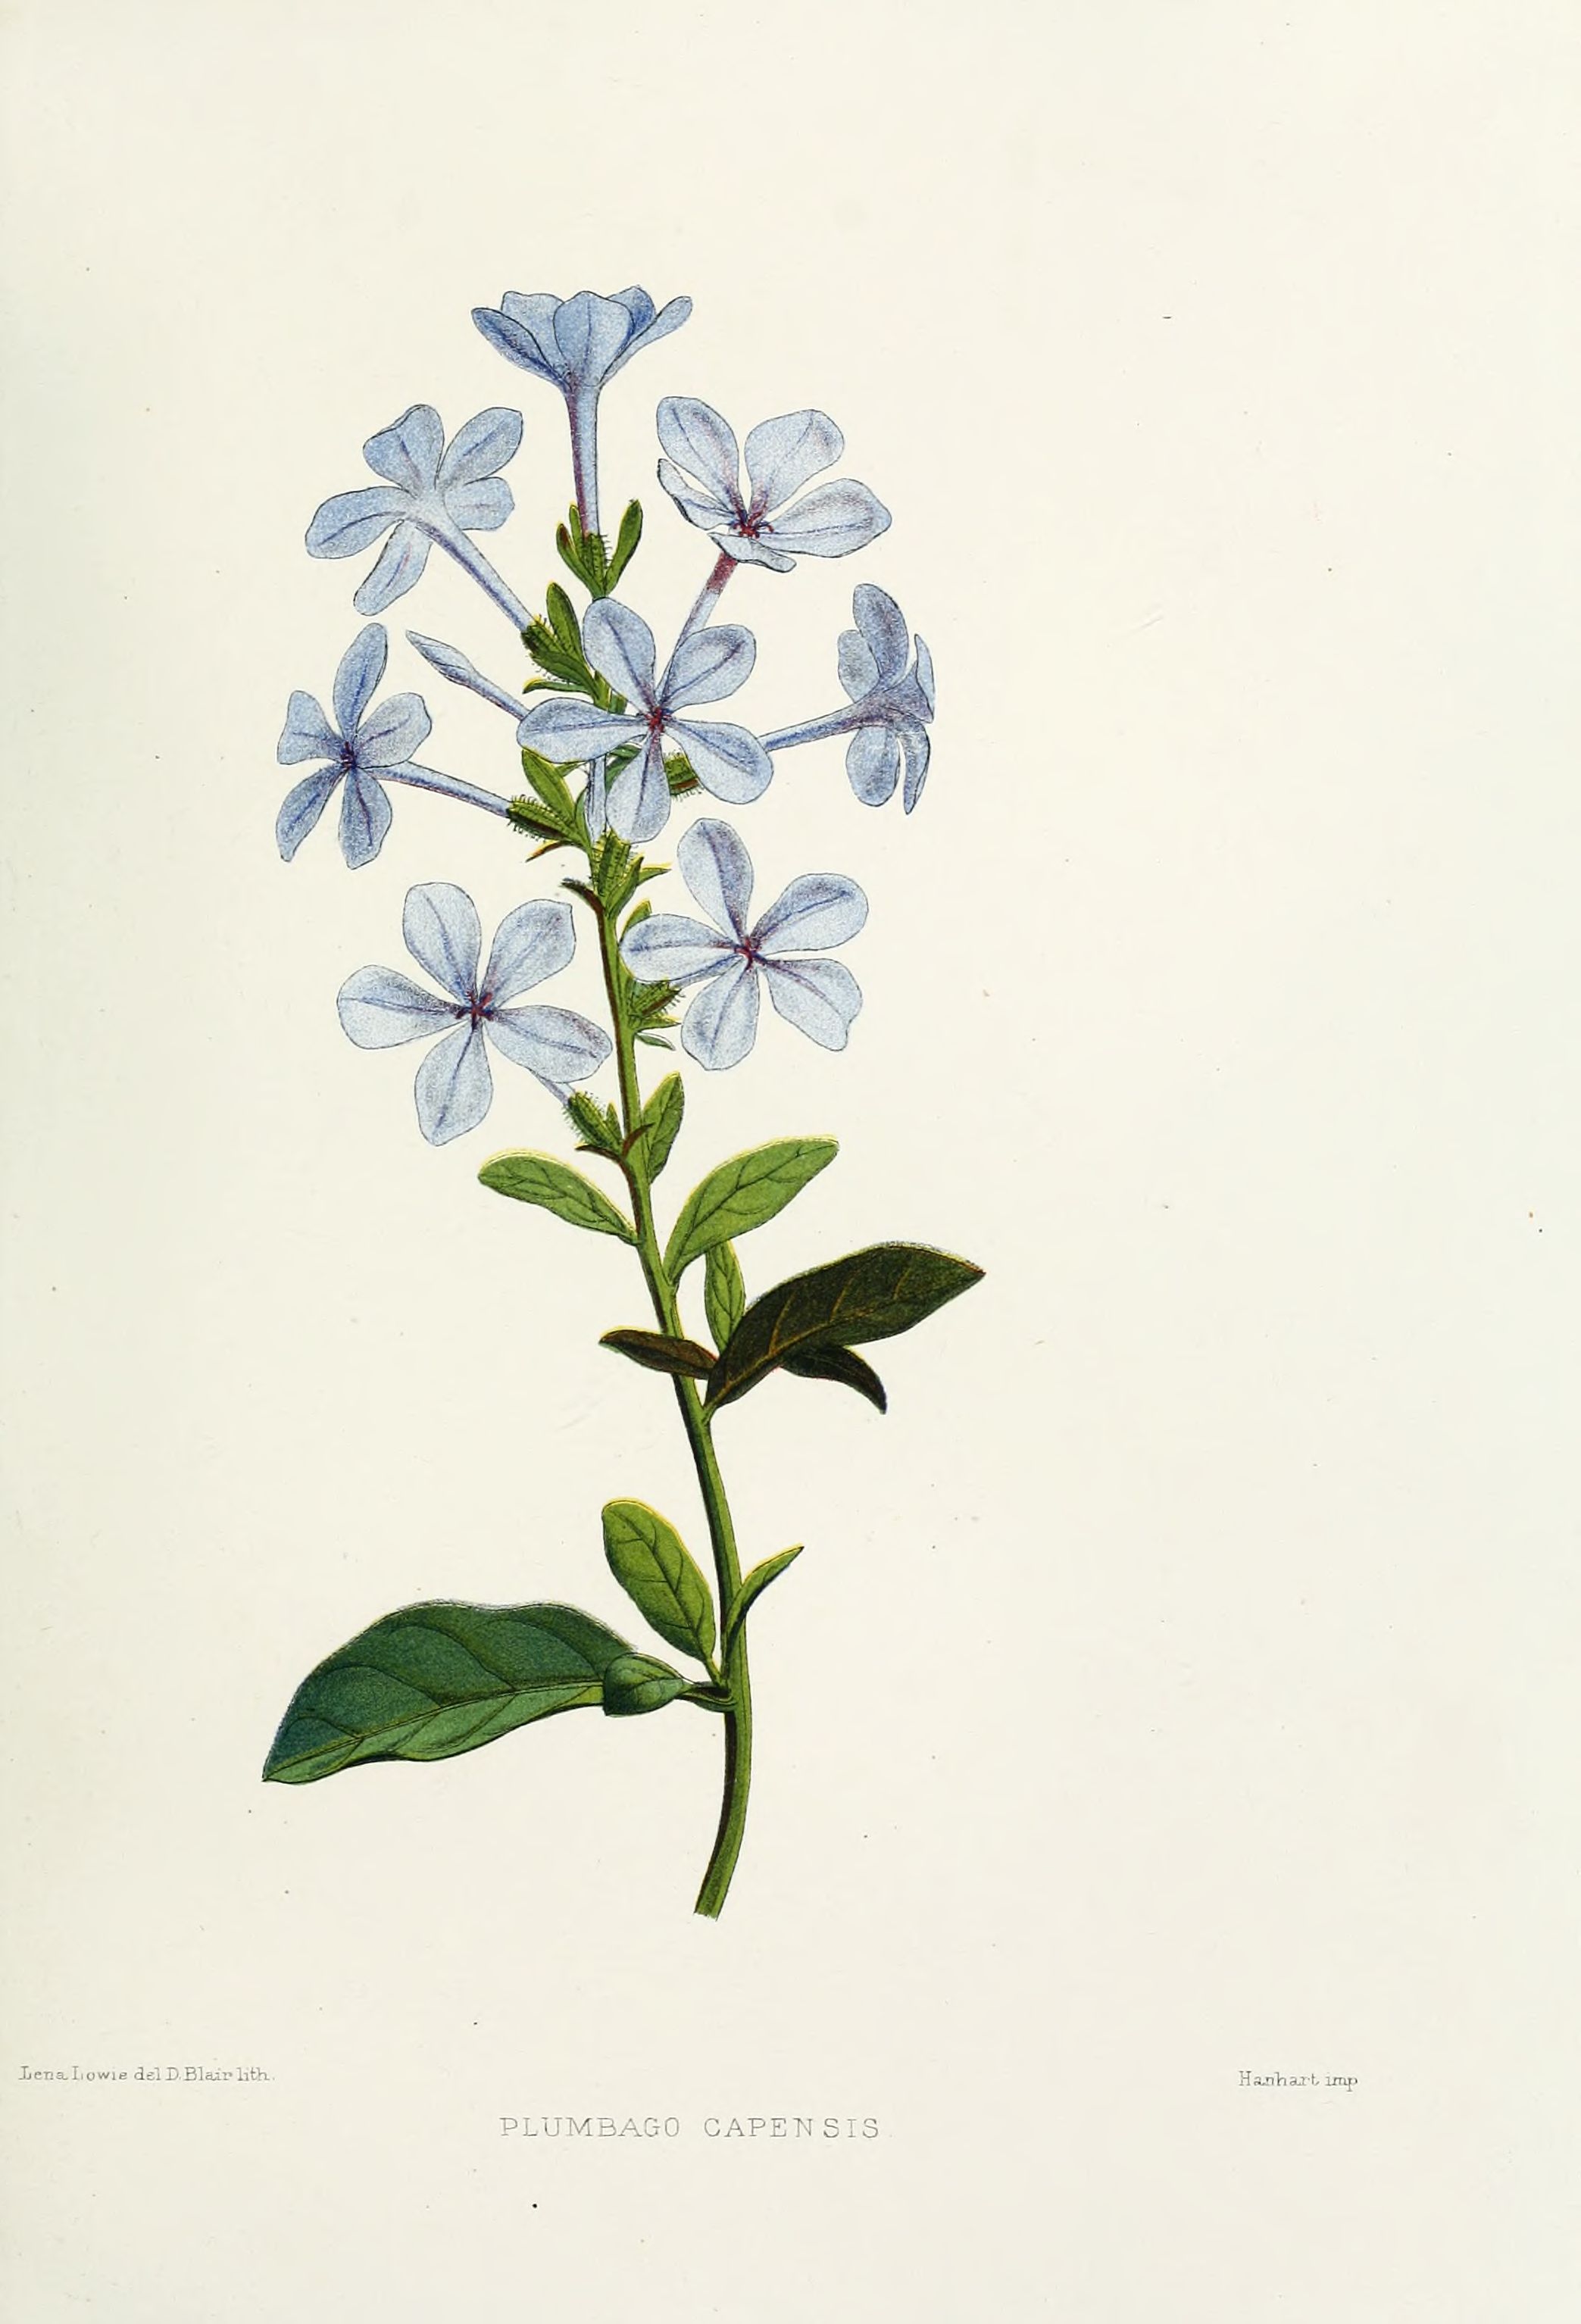 1000+ images about Plumbago on Pinterest.